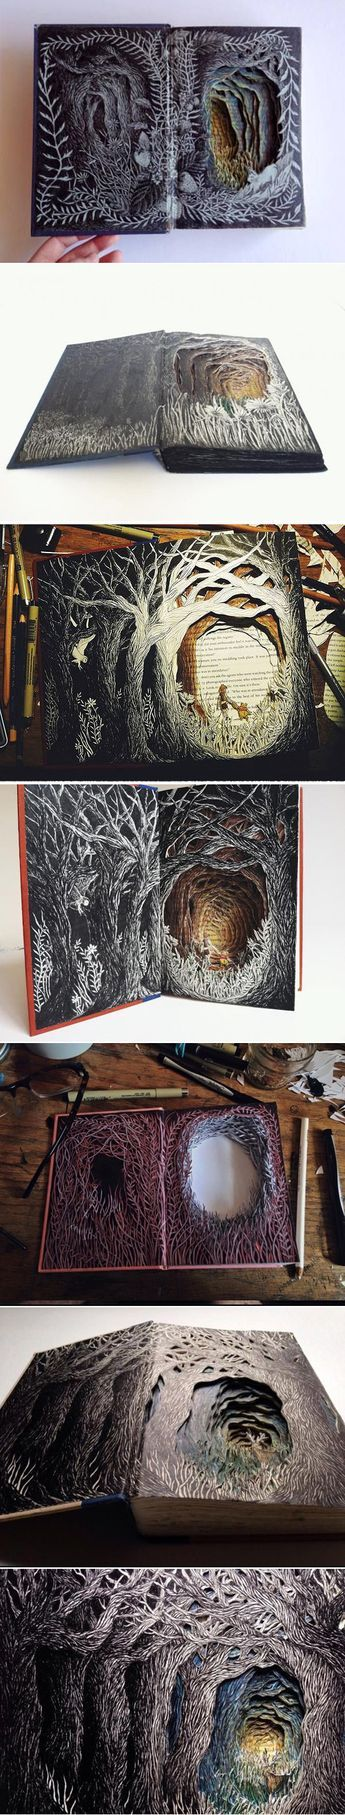 My Owl Barn: 3D Illustrations from Discarded Books by Isobelle Ouzman: